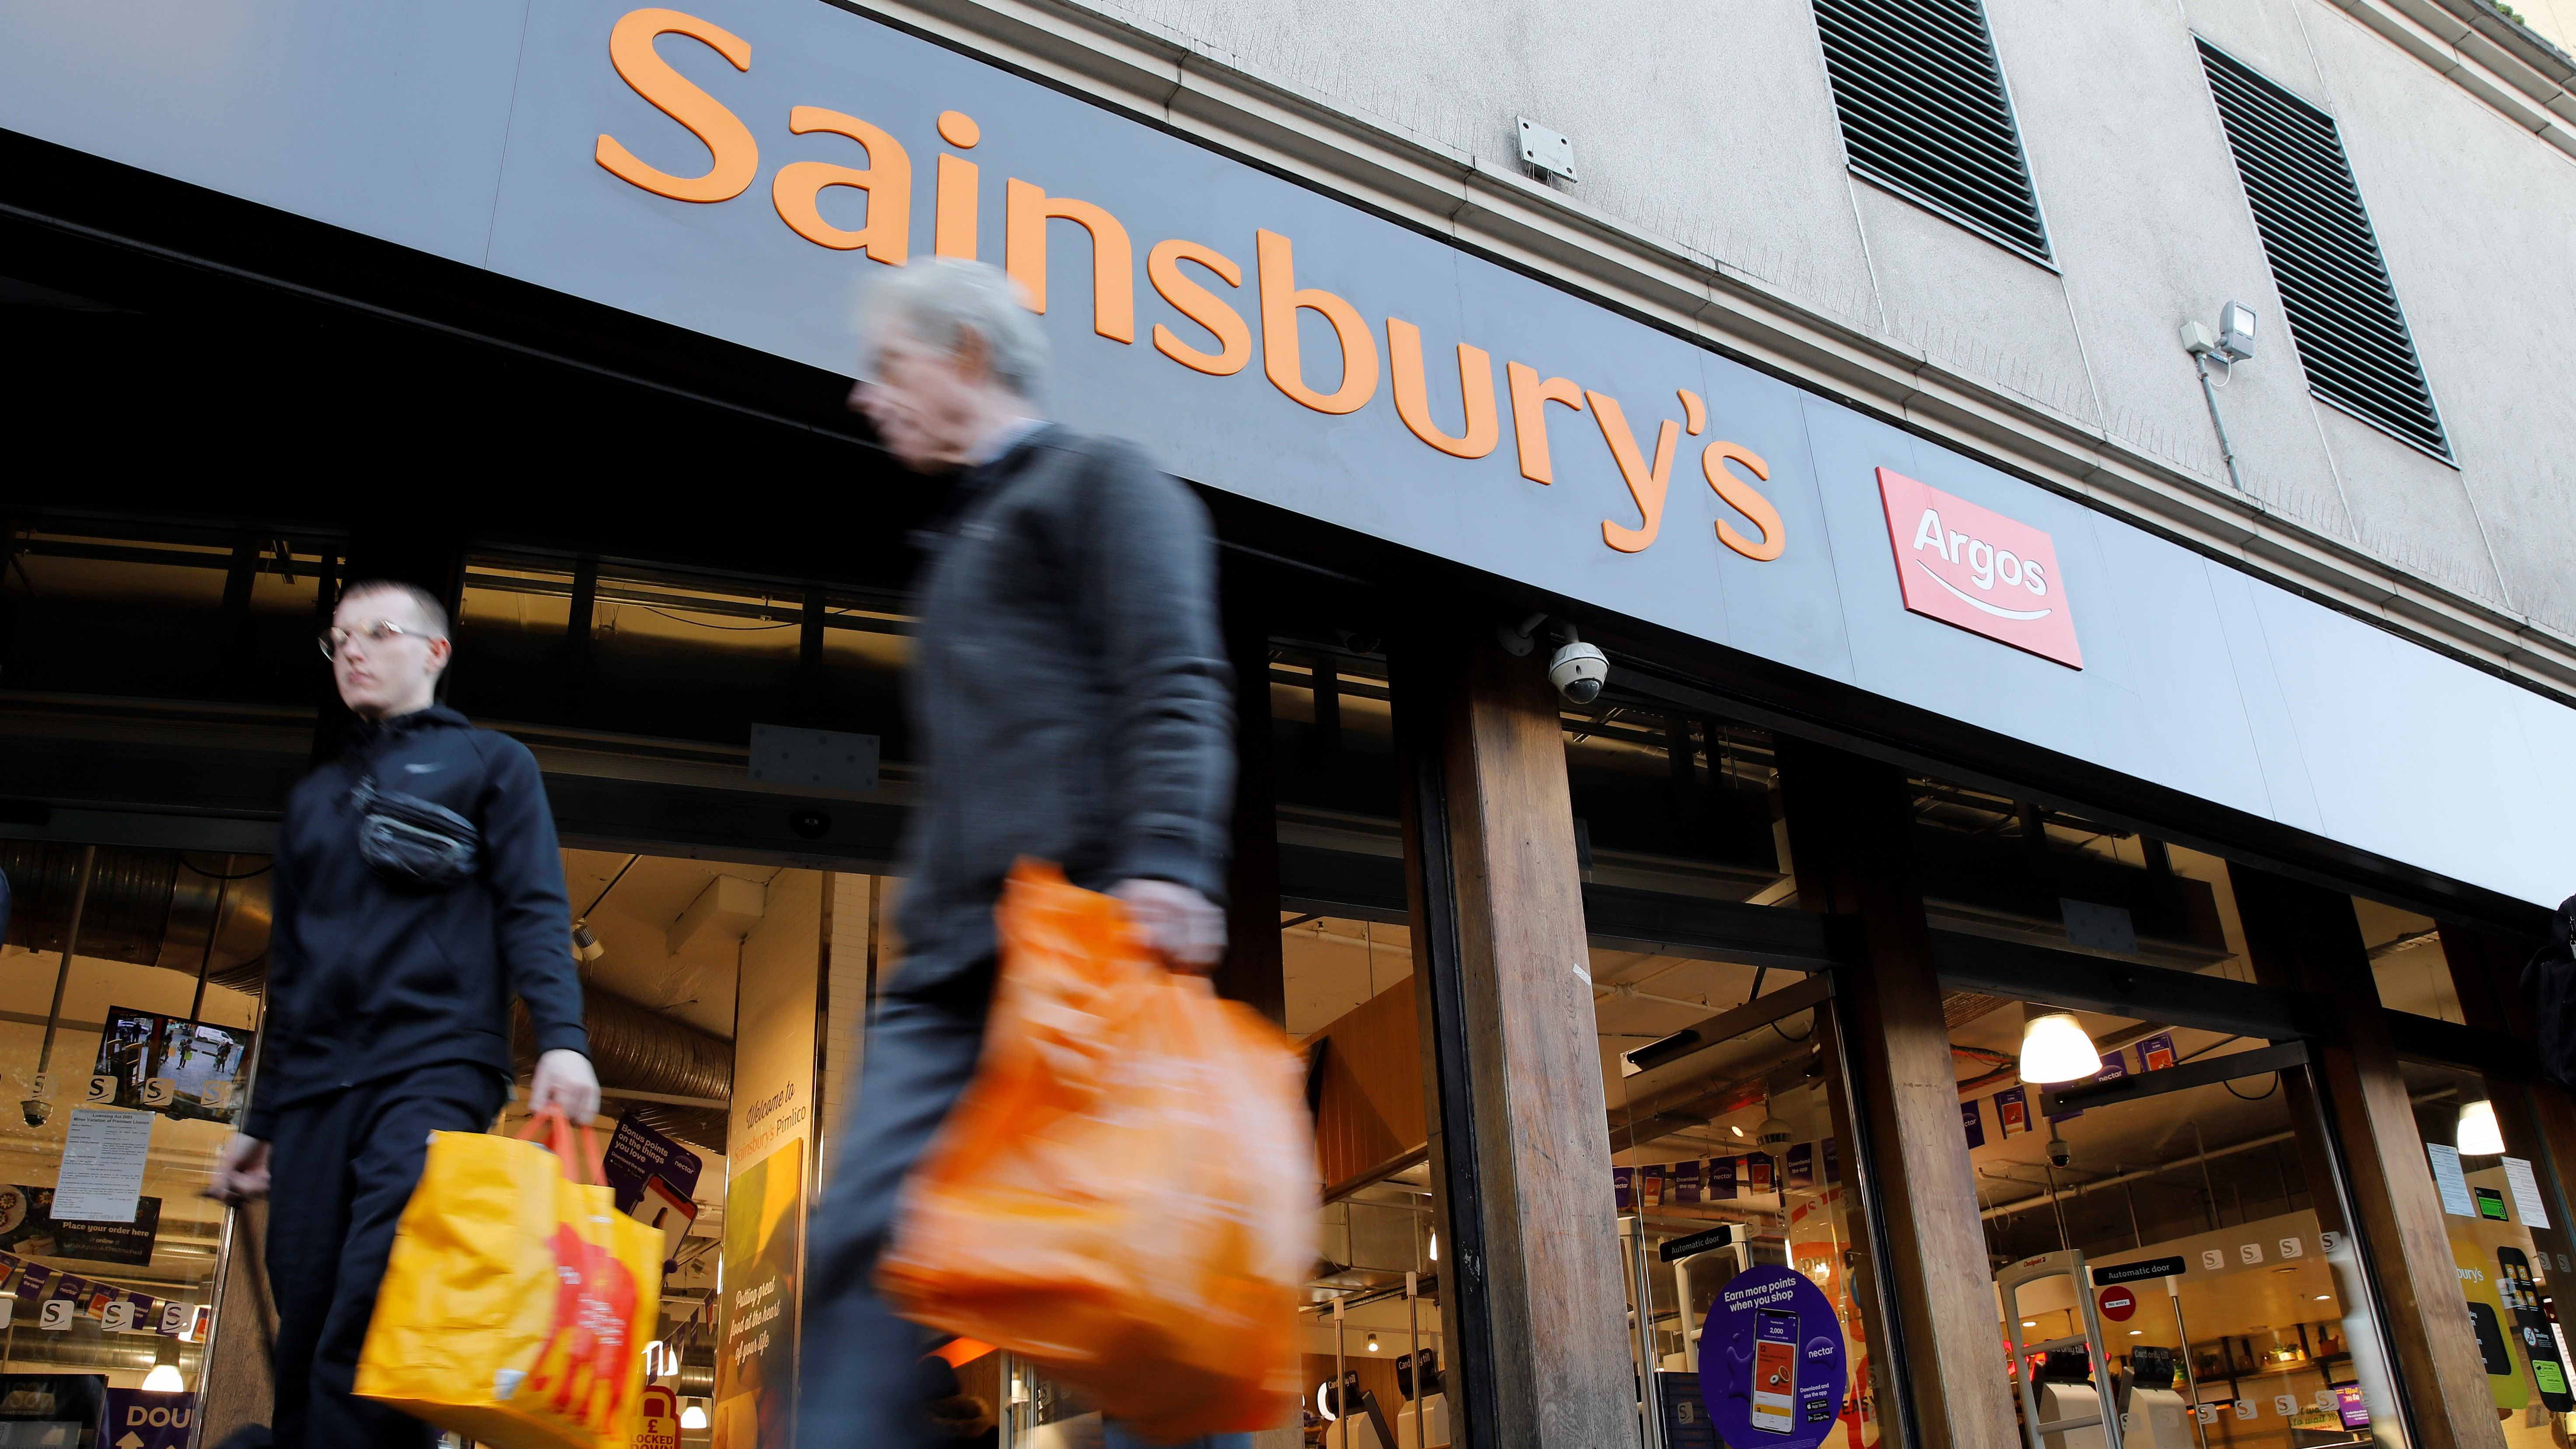 Sainsbury's online to double its home delivery and click-and-collect slots